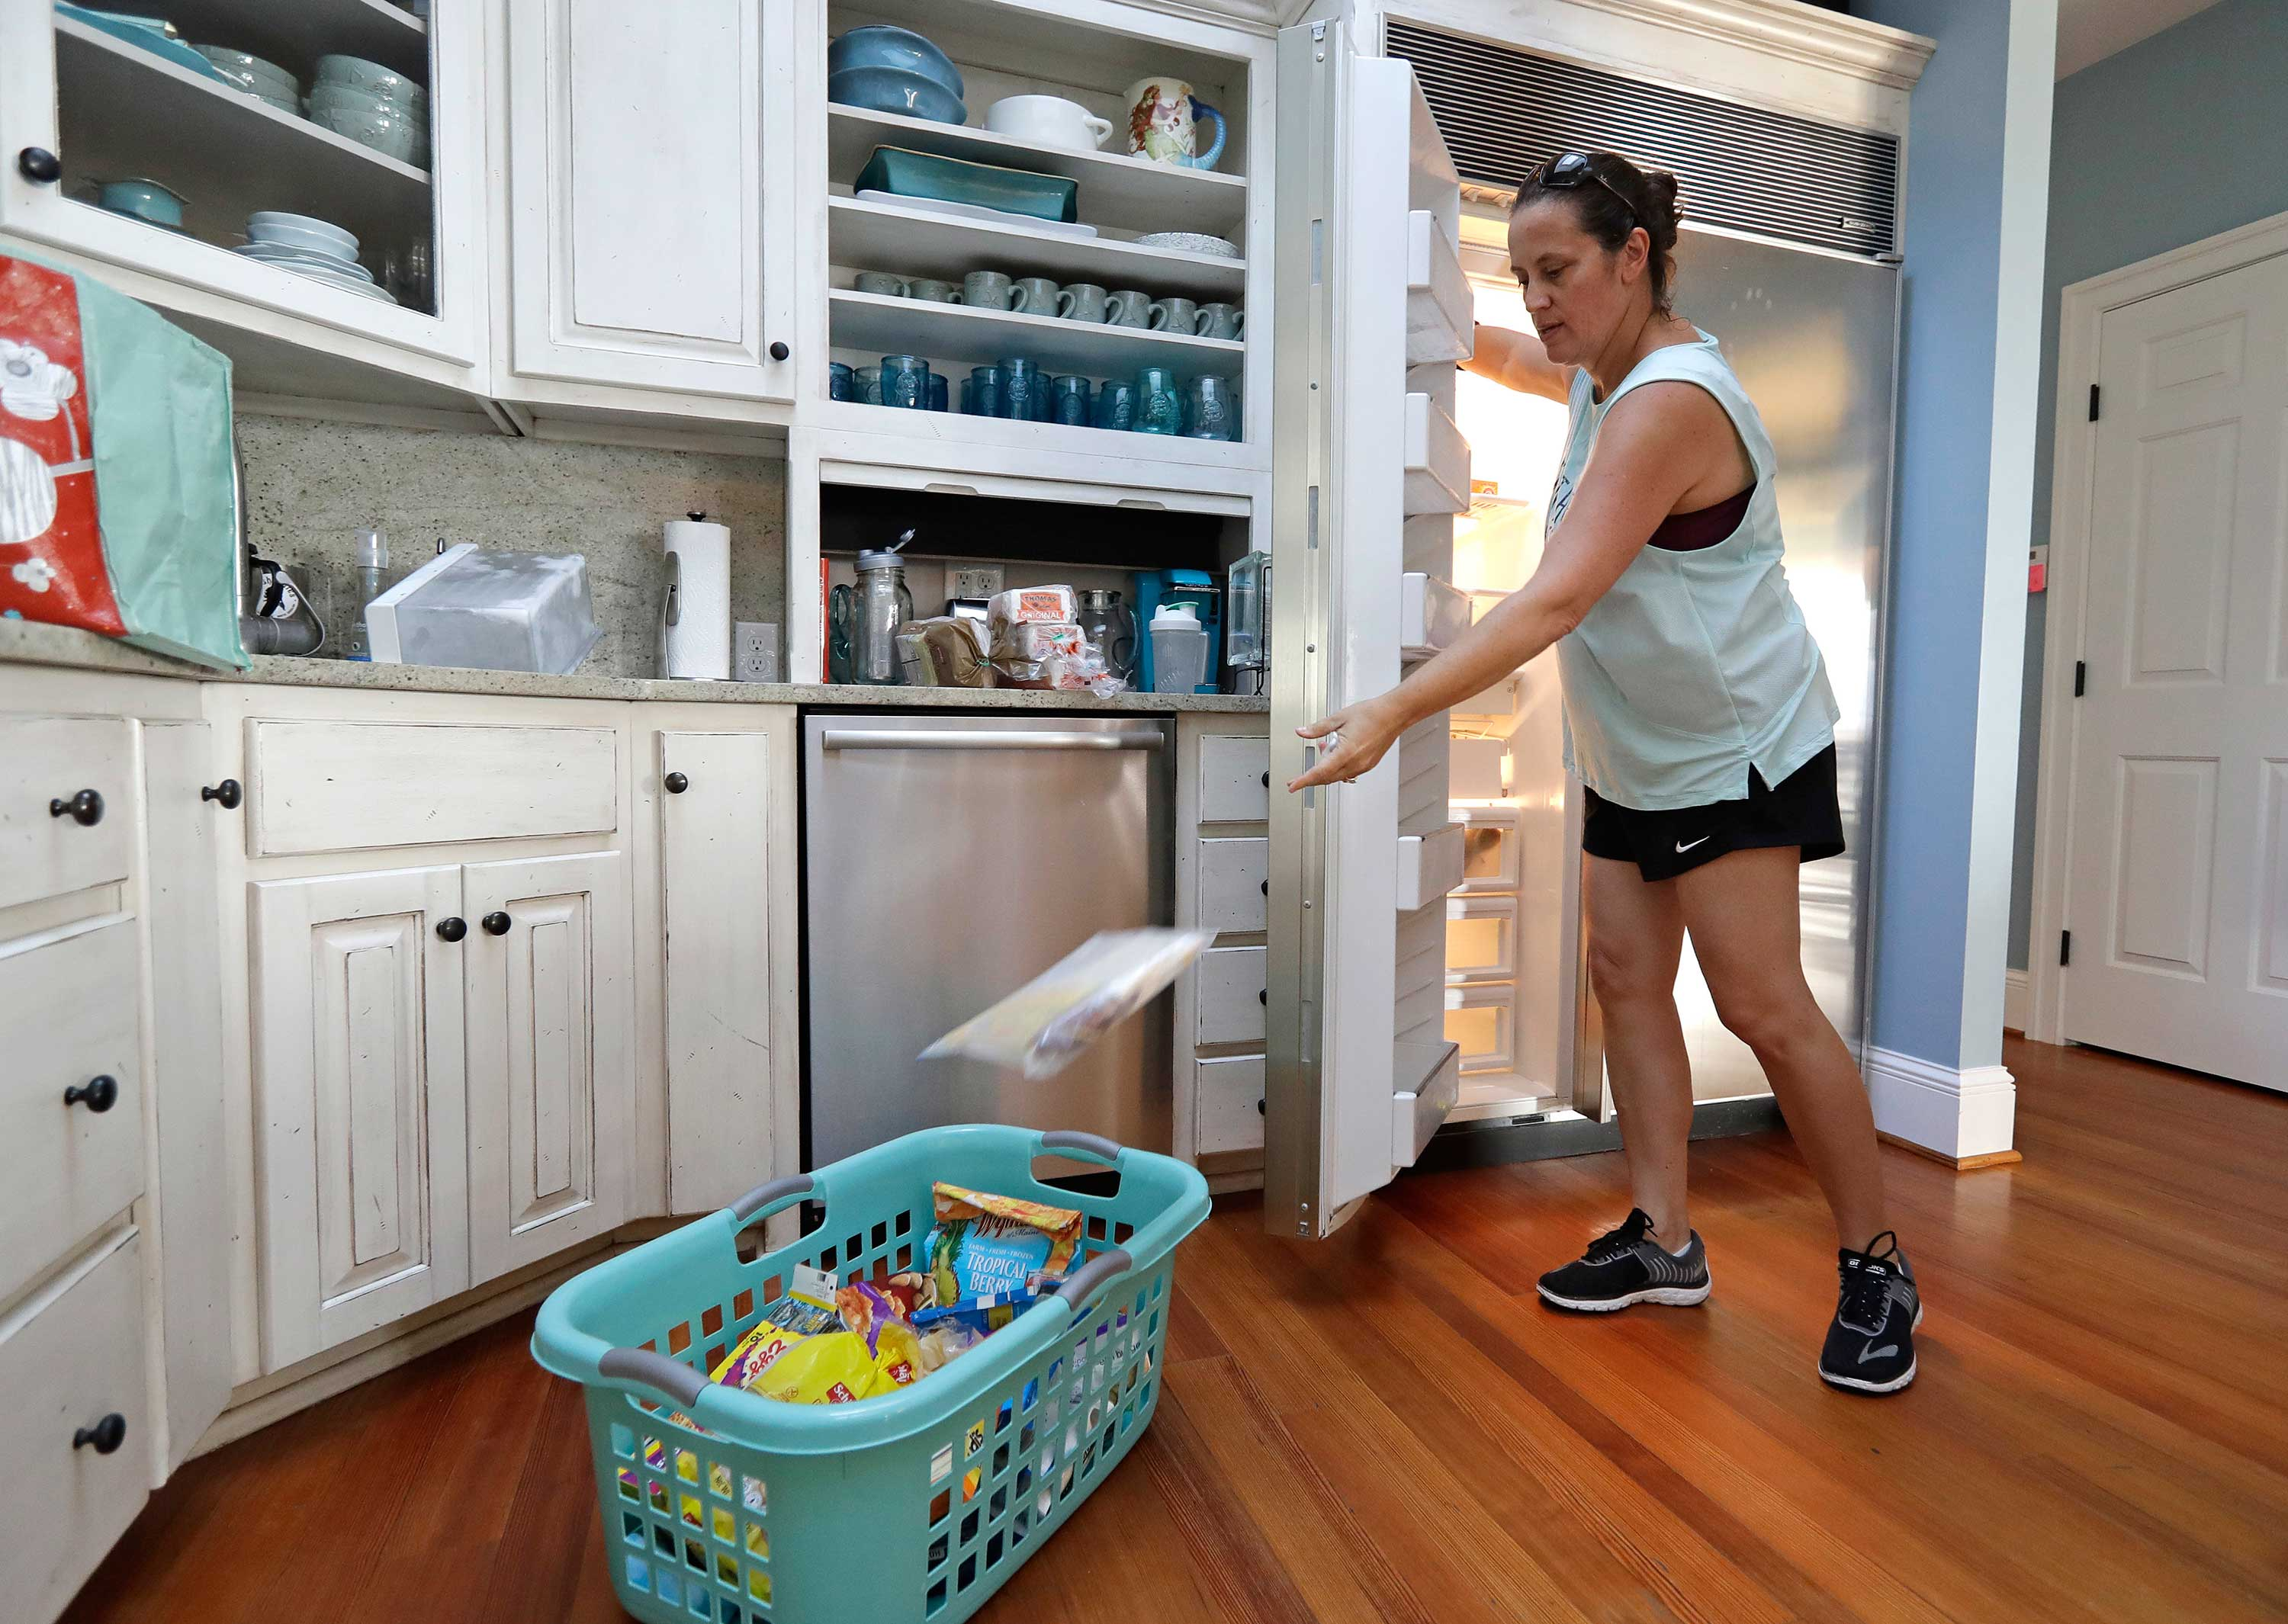 "<div class=""meta image-caption""><div class=""origin-logo origin-image none""><span>none</span></div><span class=""caption-text"">Michelle Stober, of Cary, N.C., removes food from a freezer as she prepares their vacation home in advance of Hurricane Florence in Wrightsville Beach, N.C., Tuesday, Sept. 11. (Chuck Burton/AP Photo)</span></div>"